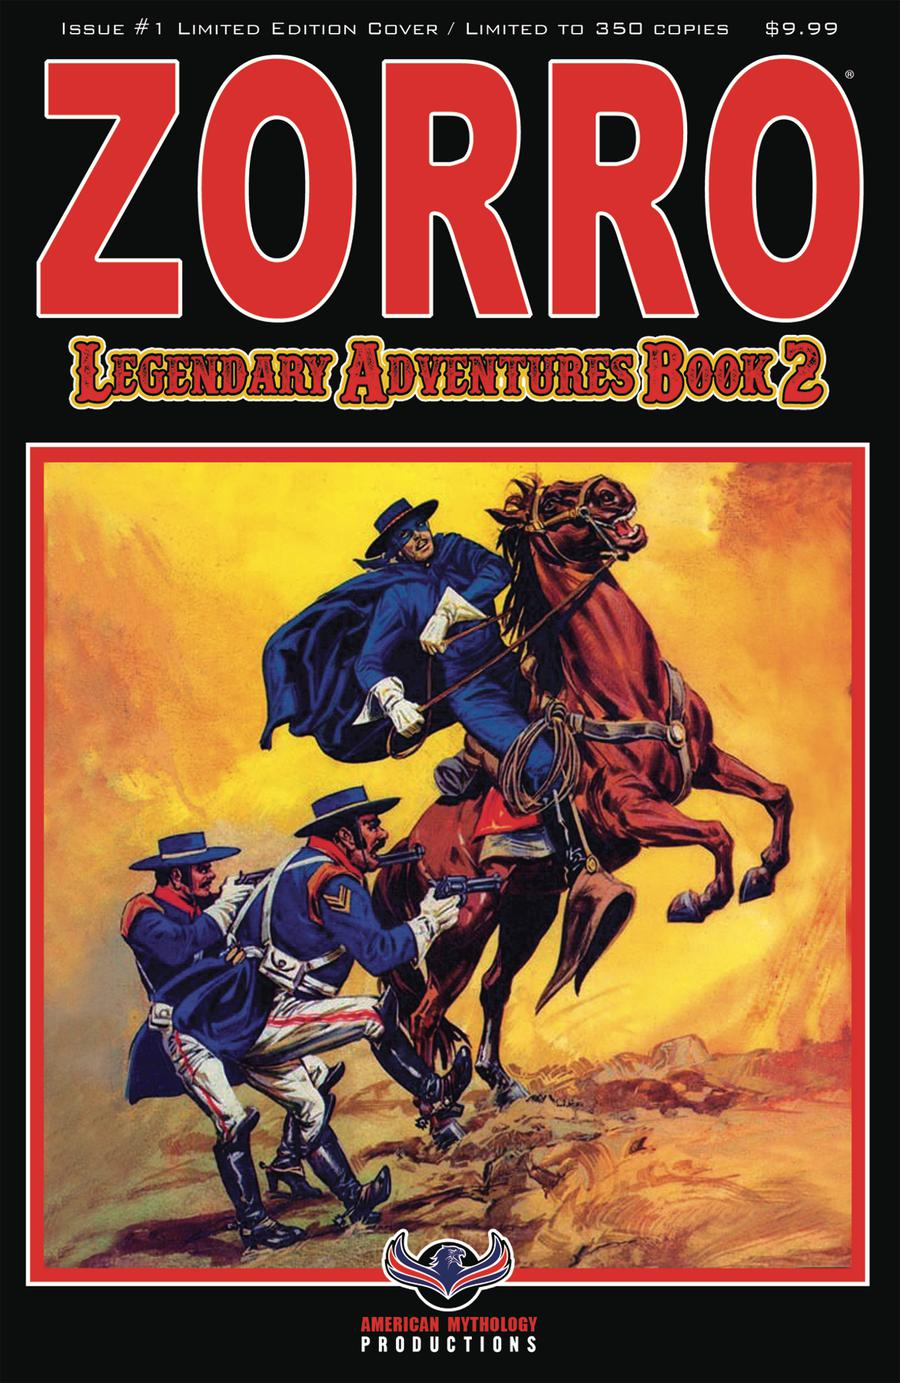 Zorro Legendary Adventures Book 2 #1 Cover B Variant Francisco Cueto Blazing Blades Limited Edition Cover